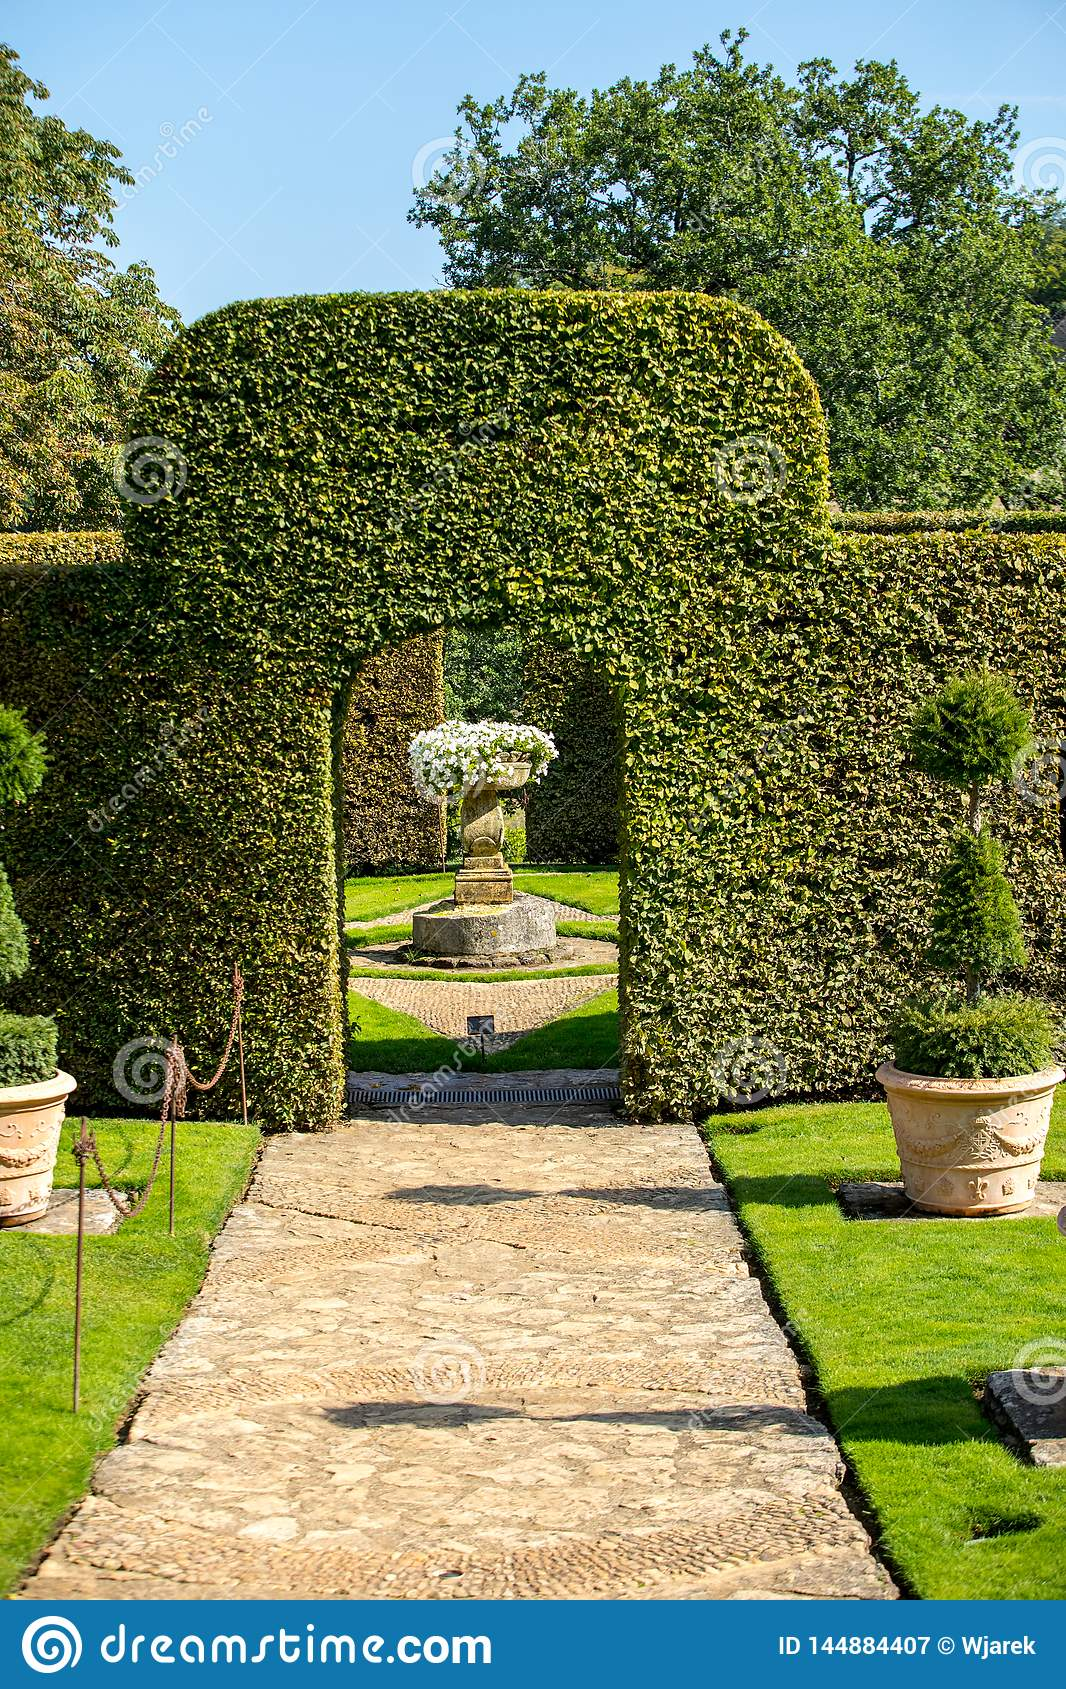 The picturesque Jardins du Manoir d Eyrignac in Dordogne.